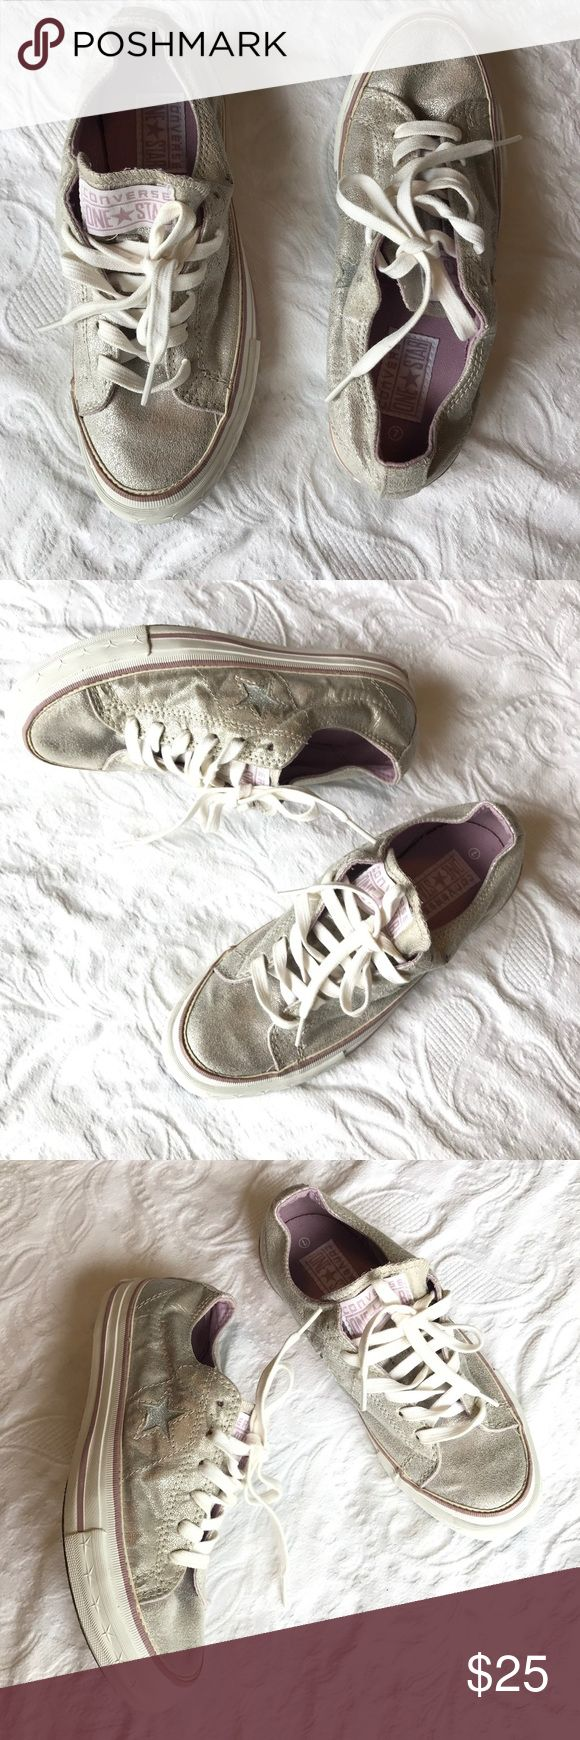 Converse one star shoes Silver and lavender Converse shoes. Good condition. Converse Shoes